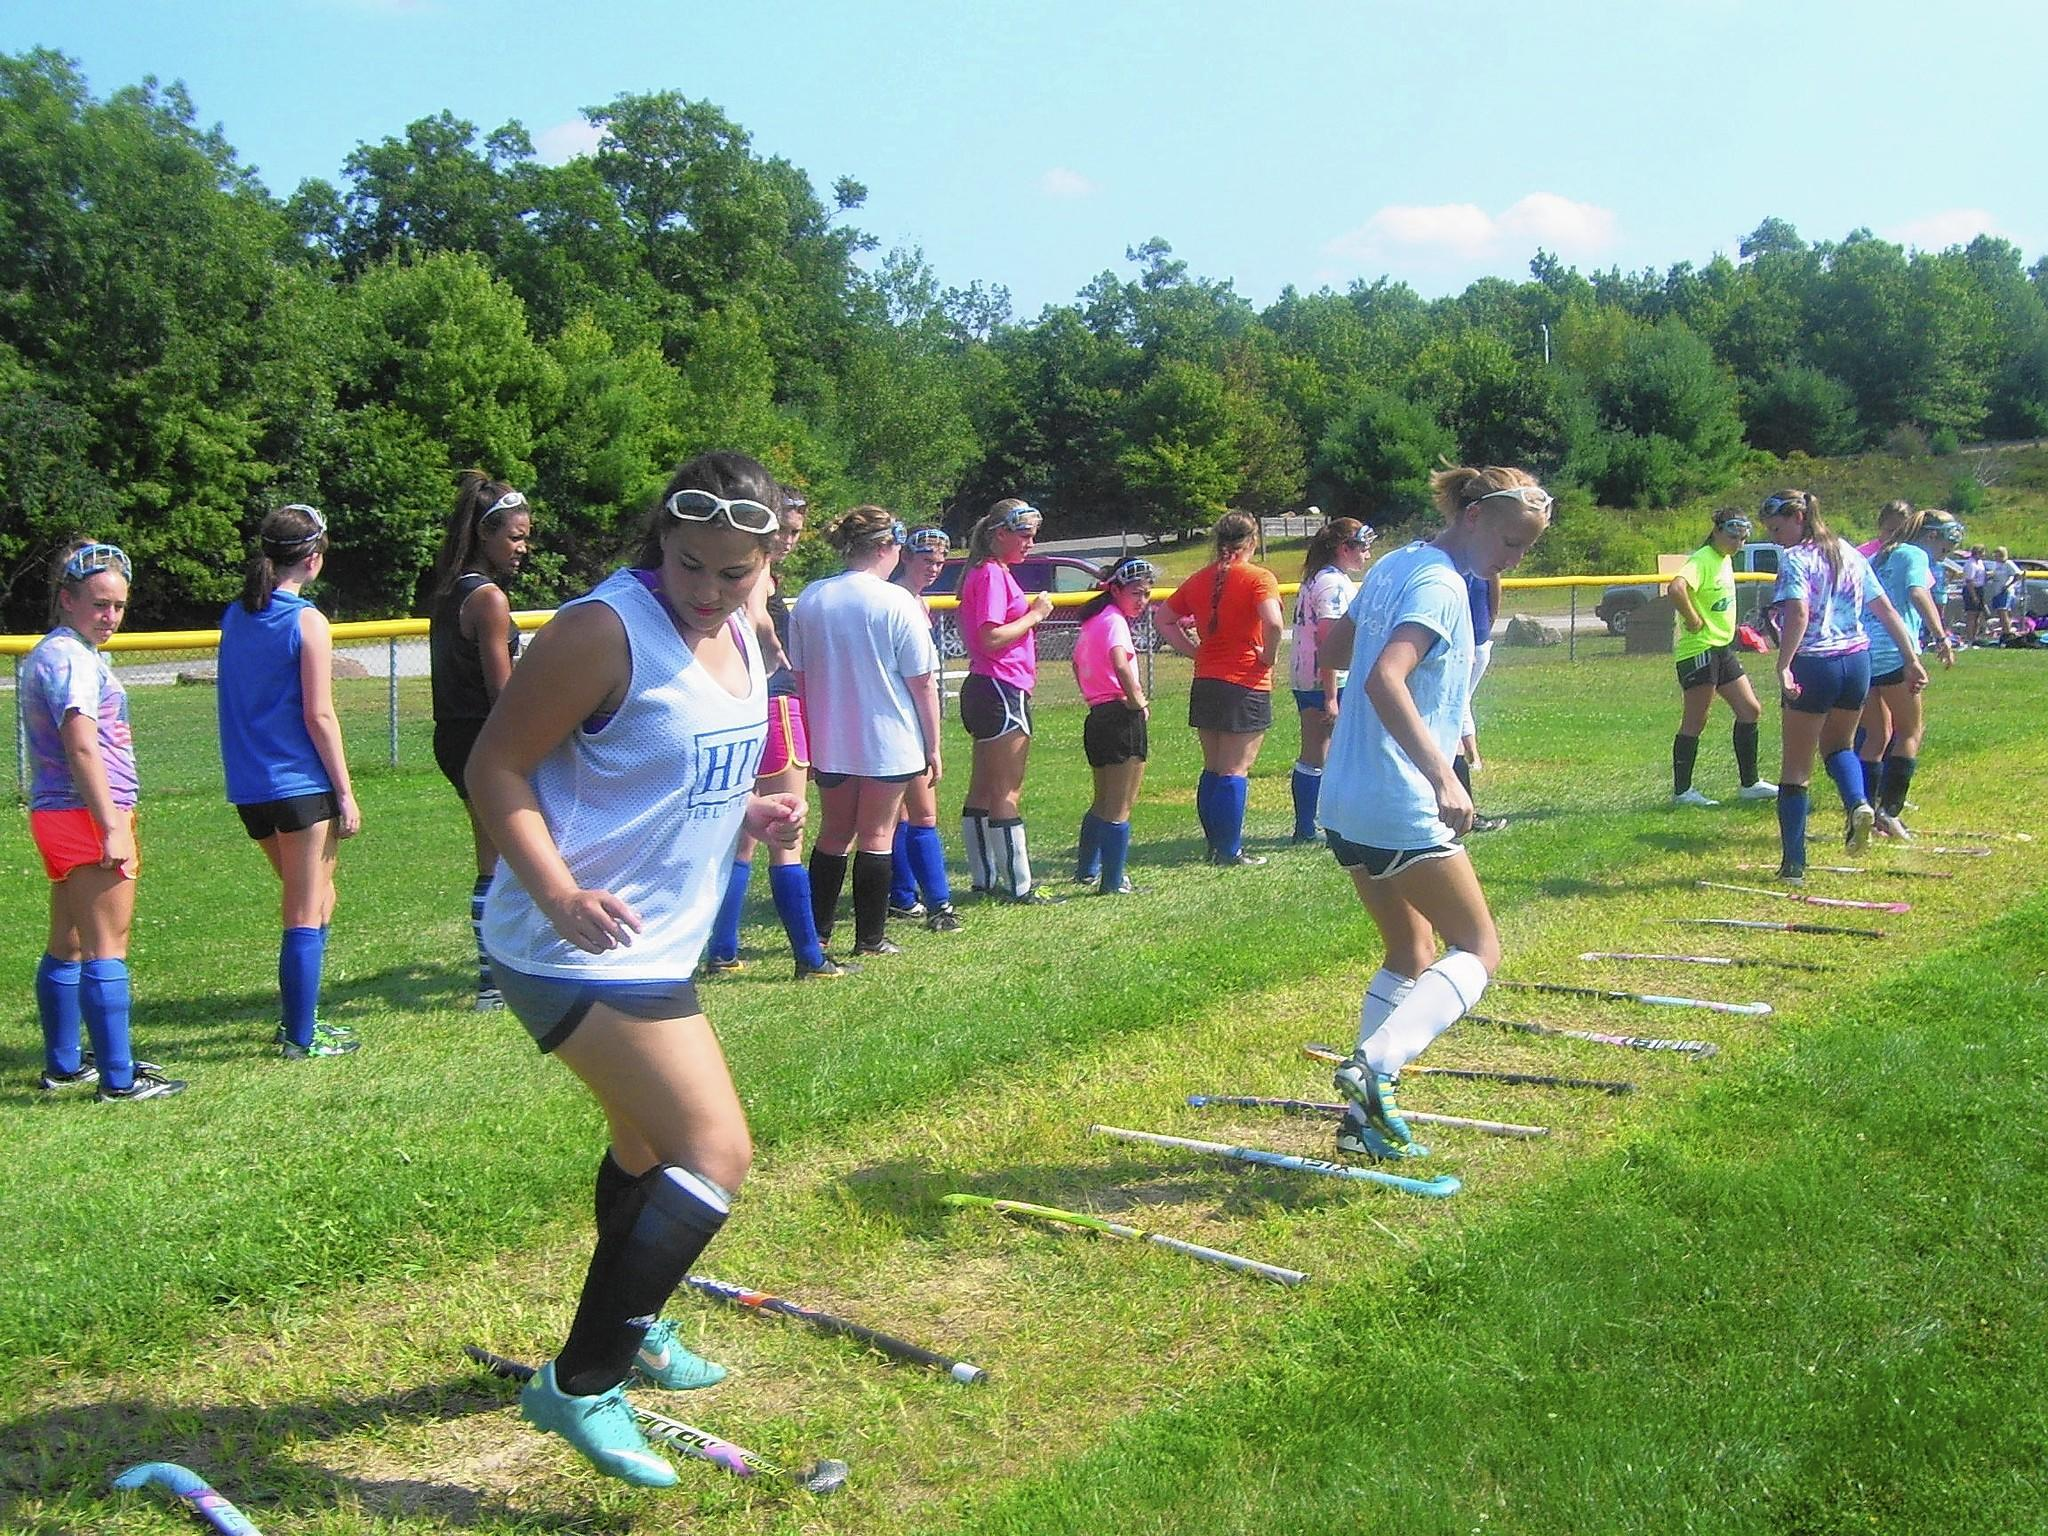 The field hockey team at Stafford High School ran through a series of drills after classes on the first day of school. Photo by Annie Gentile.